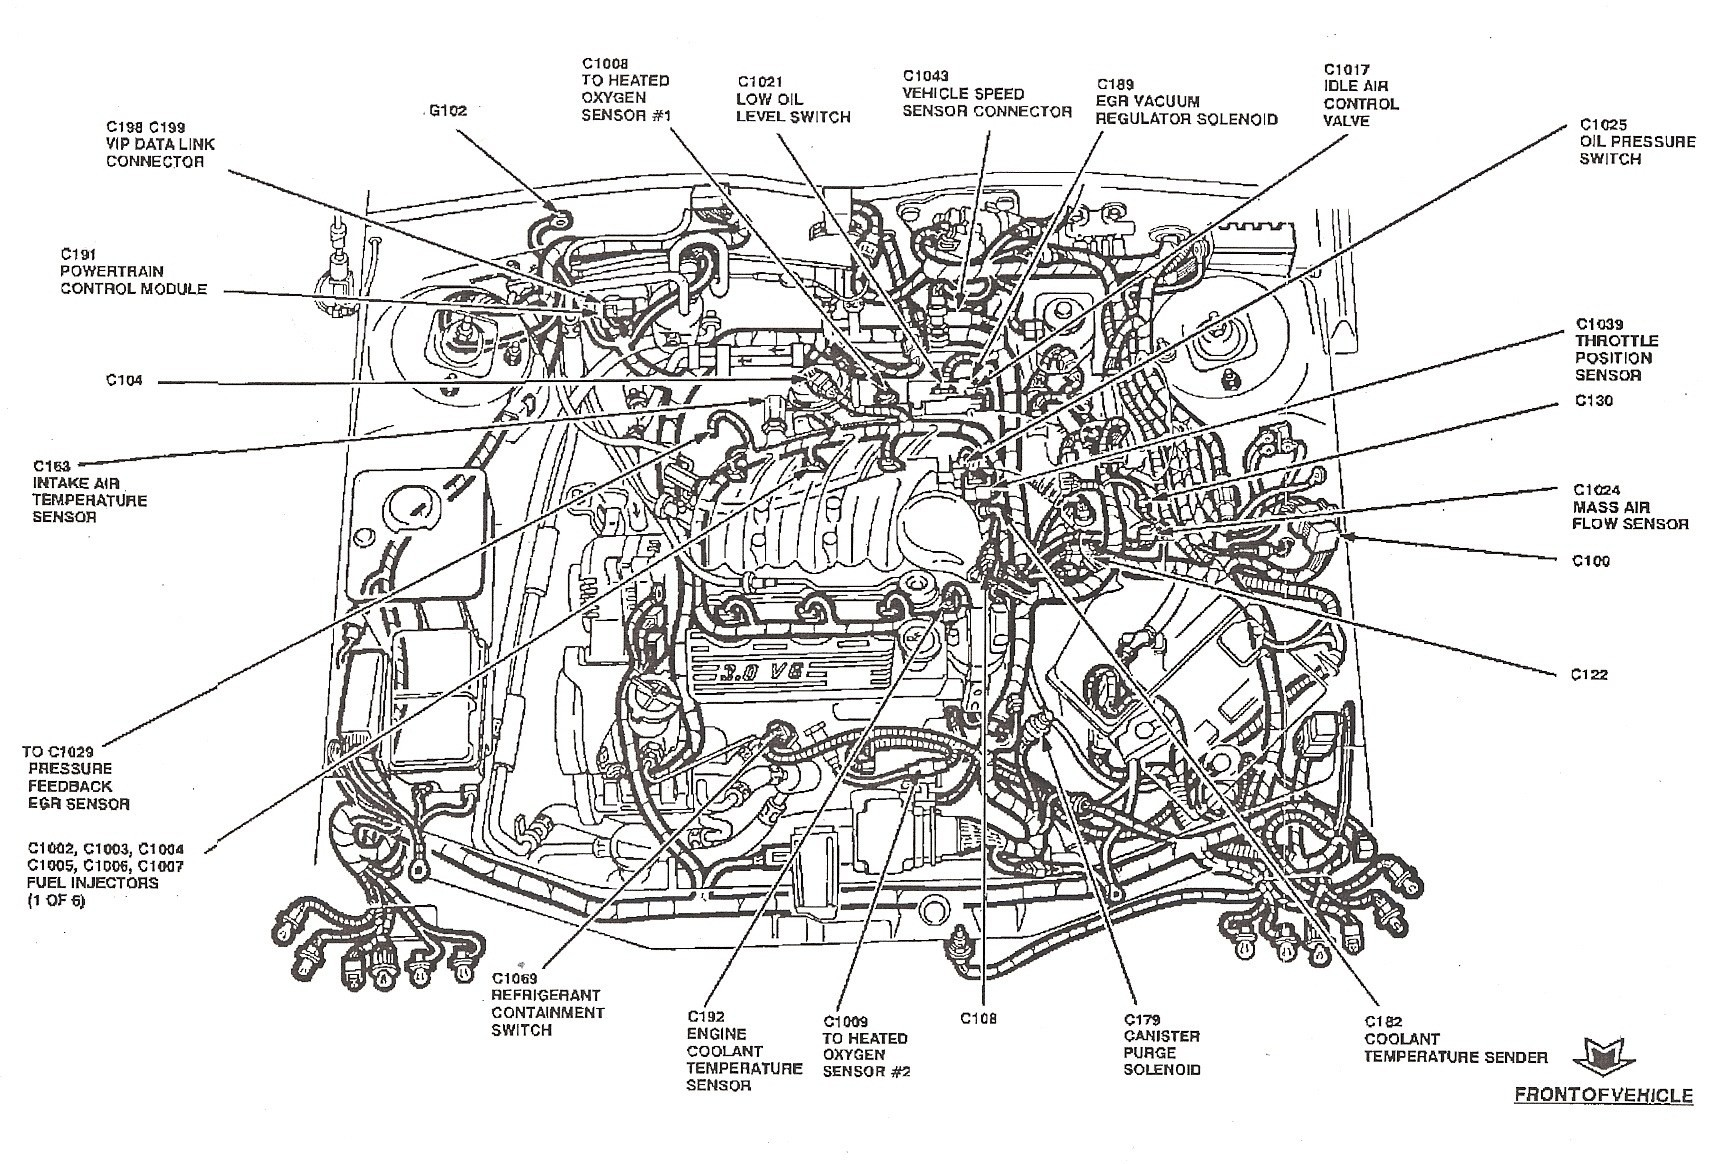 Ford Focus Engine Diagram 2001 ford Focus Fuel System Diagram Wiring Diagram Used